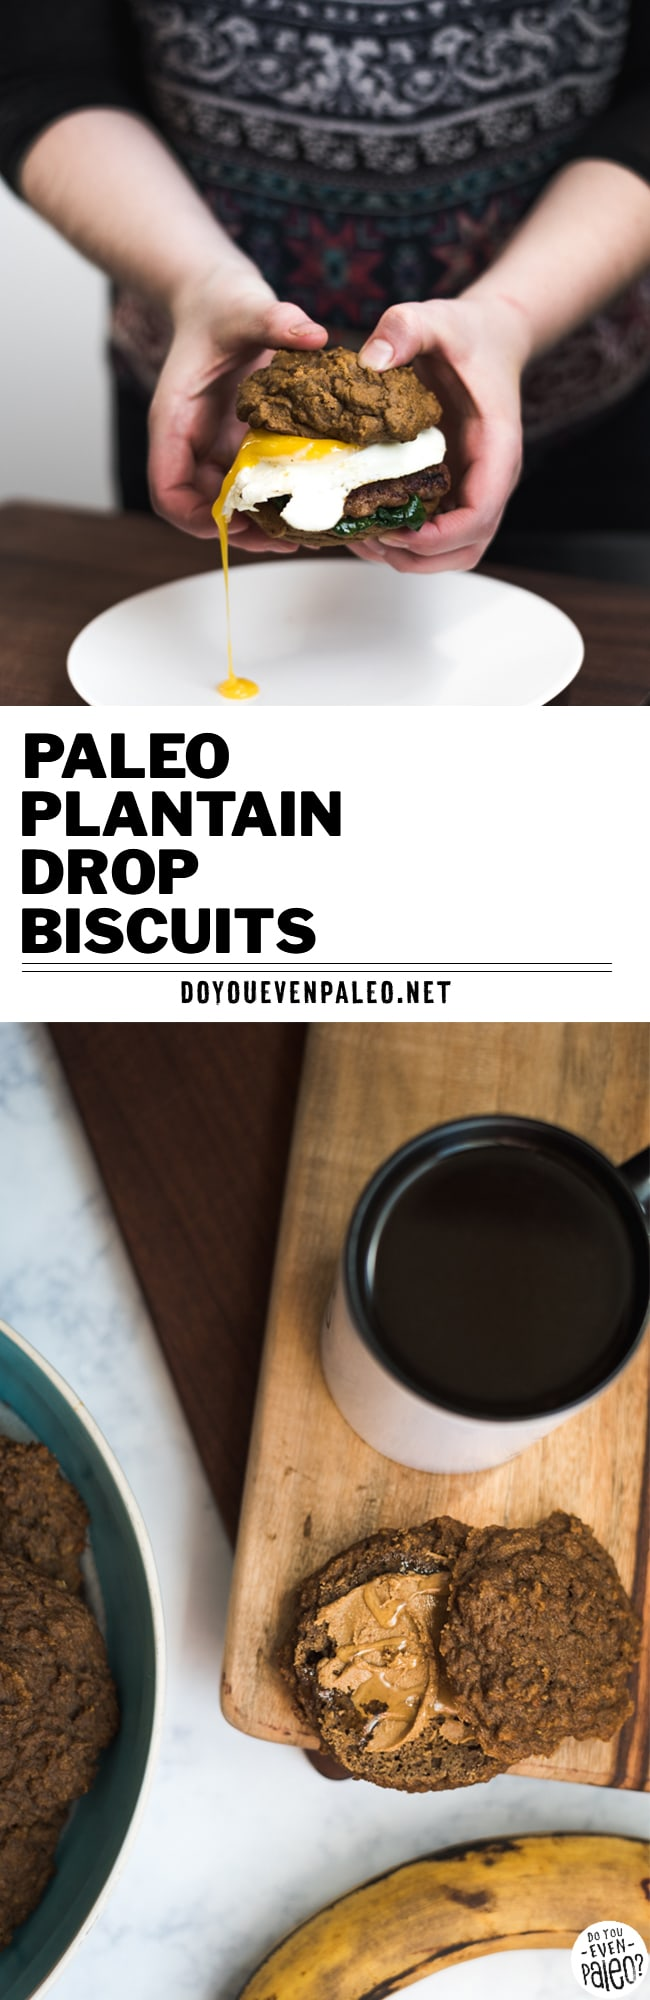 Paleo Plantain Drop Biscuits Pin Image | DoYouEvenPaleo.net